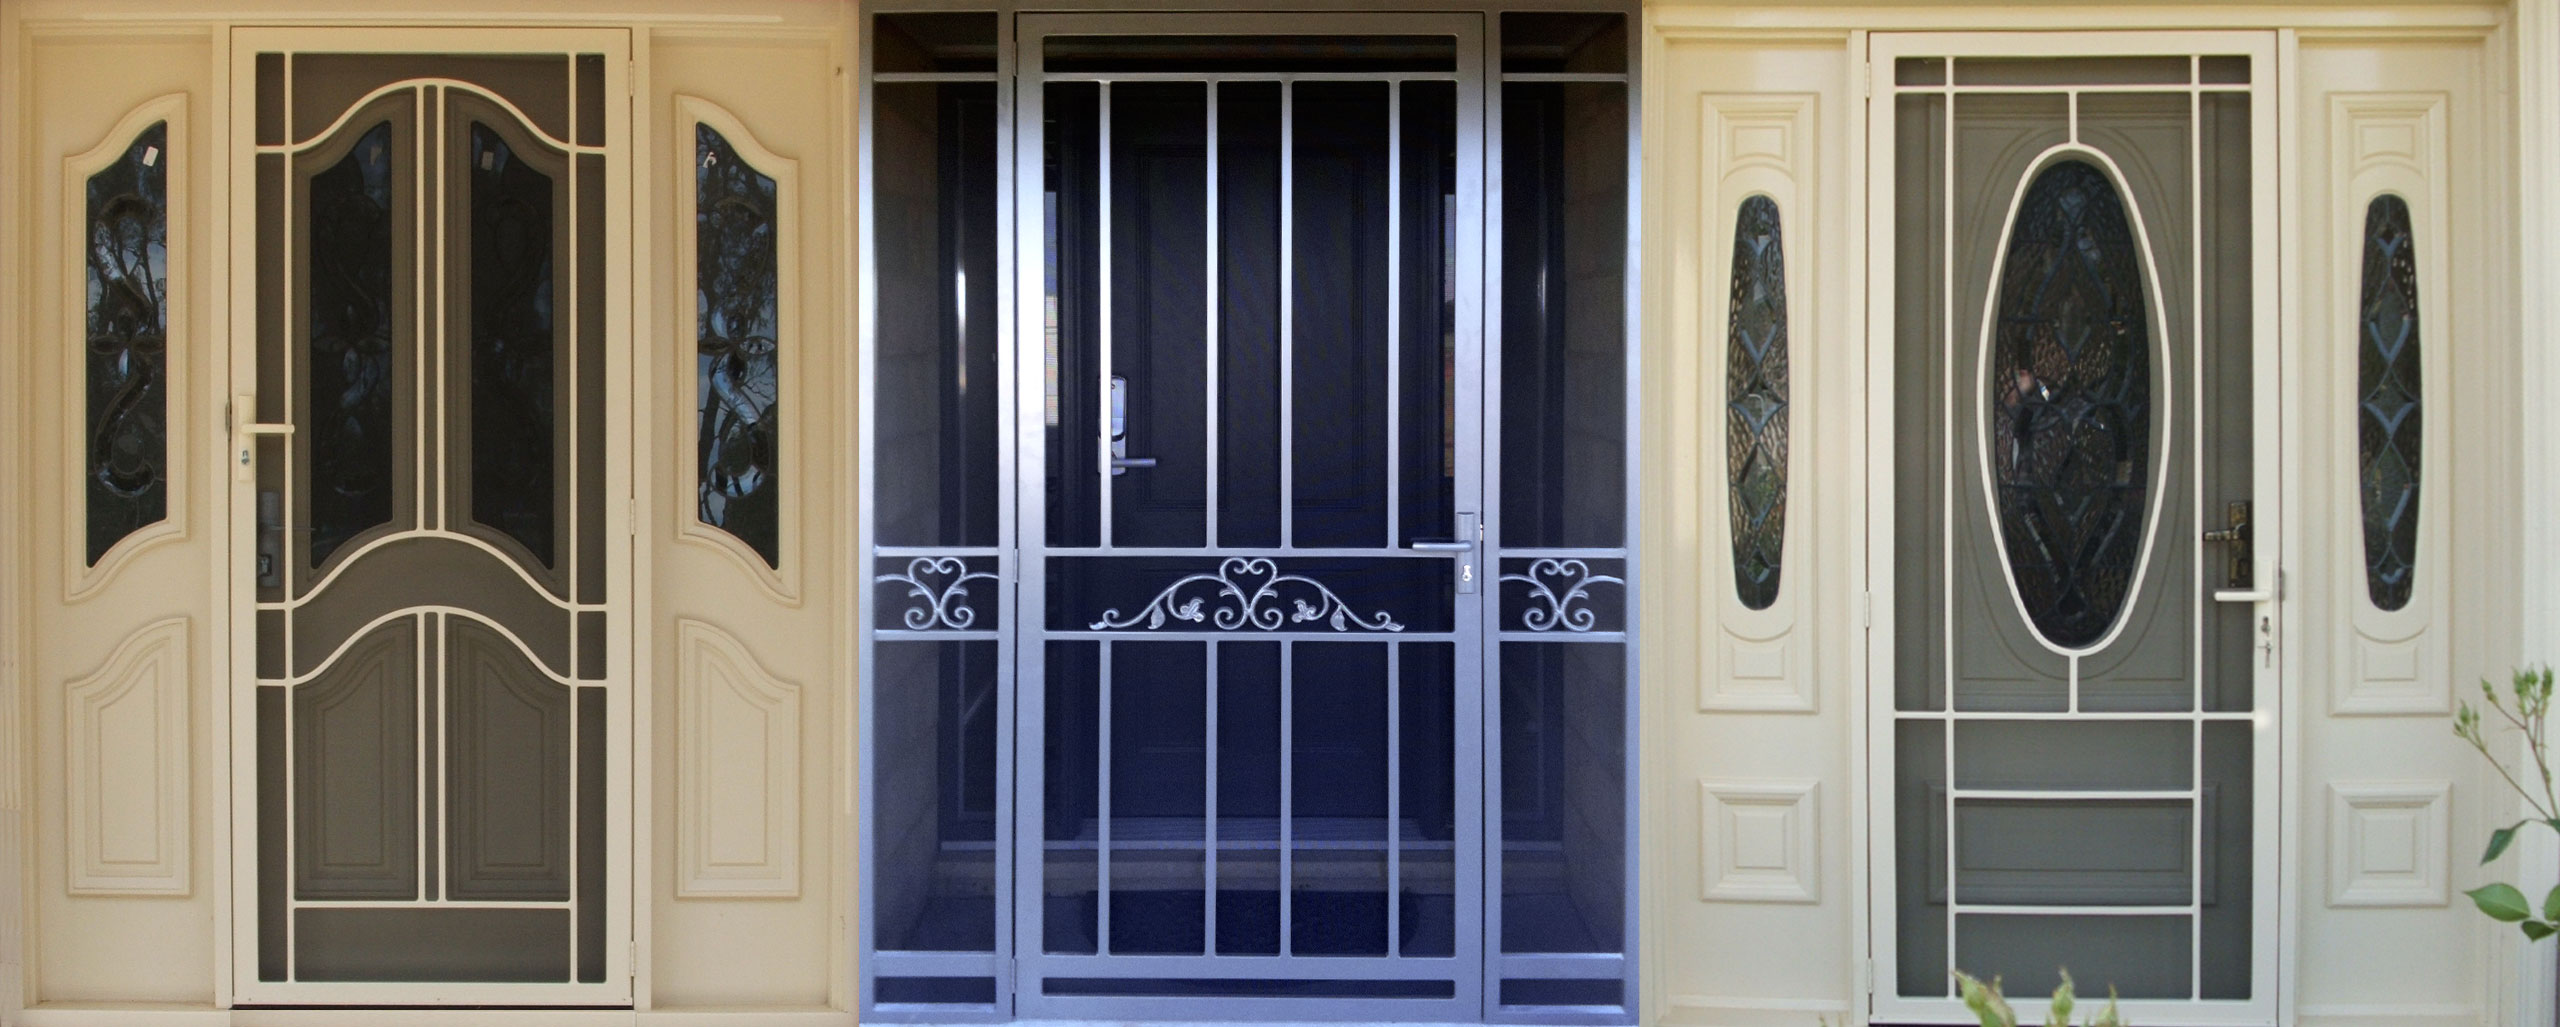 doors home the security entrance brief use your of melbourne homes door need protect